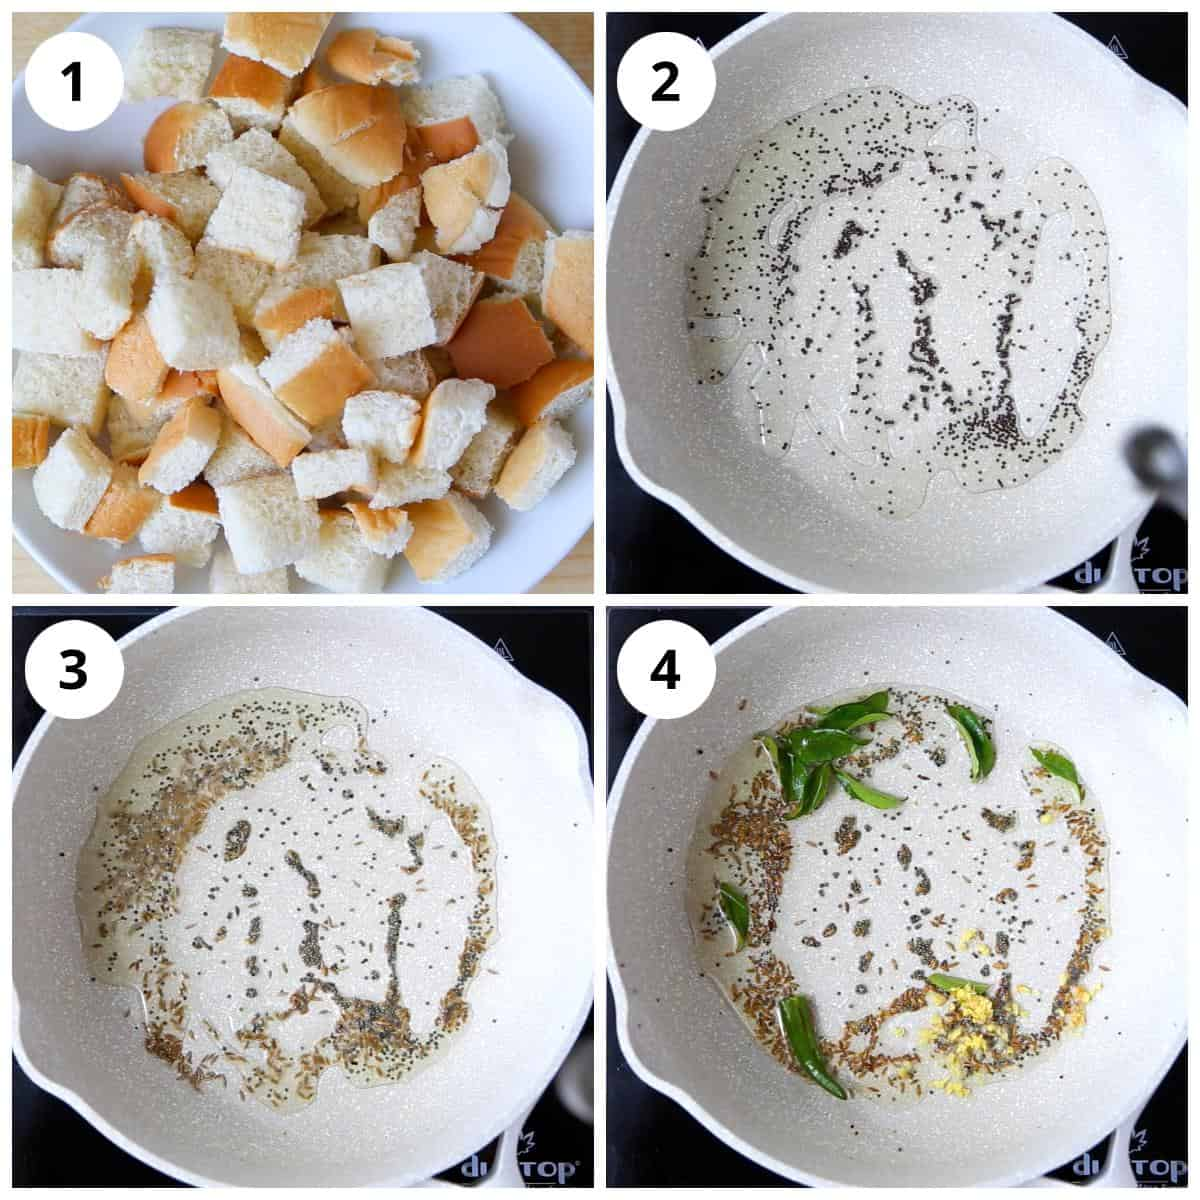 Steps for making bread pieces and tempering